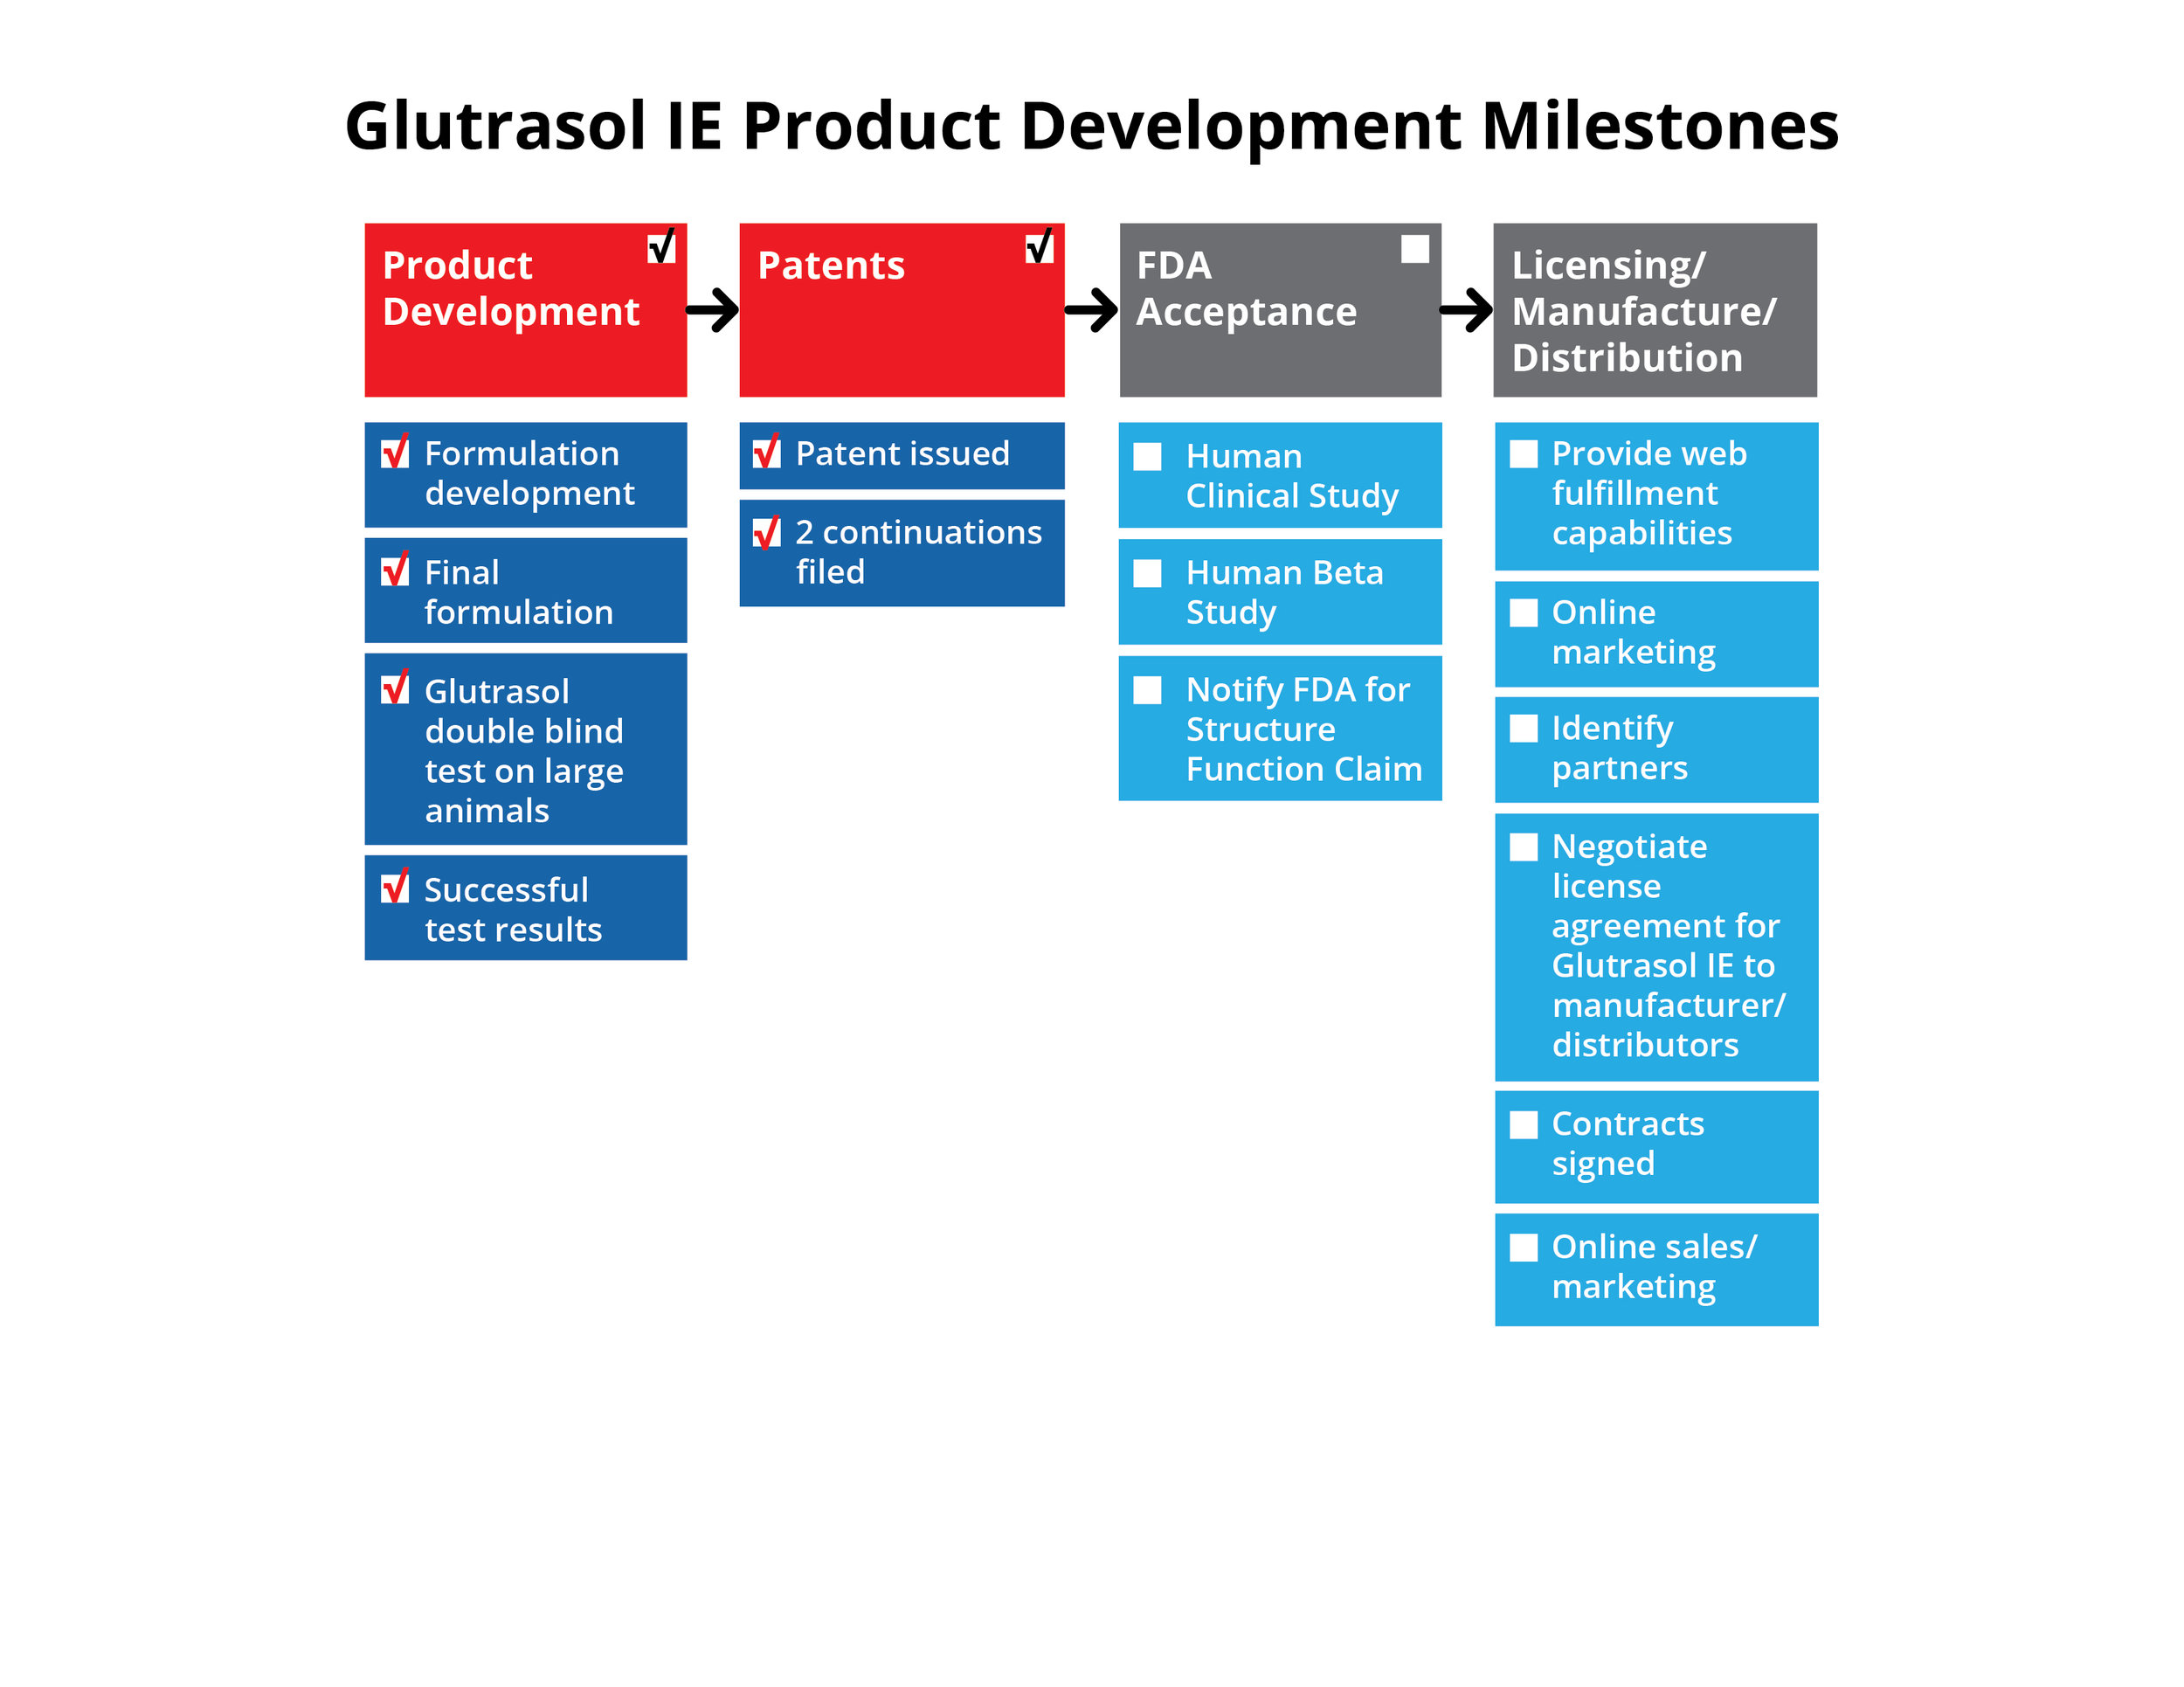 This graphic shows the Product Development Milestones achieved for the Glutrasol IE (Immuno-Enhancement) product.